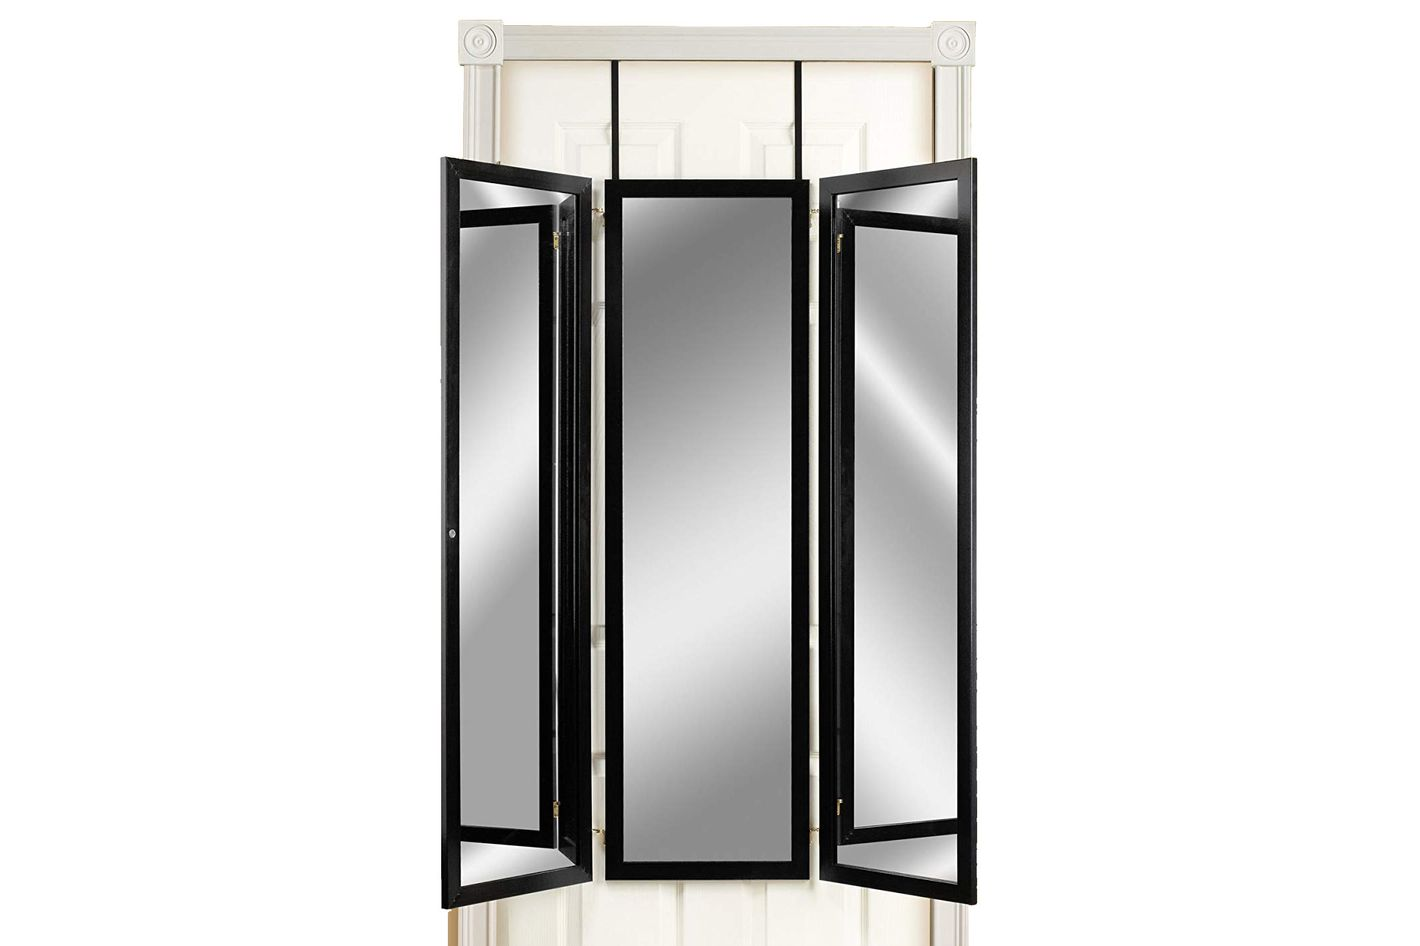 Mirrotek Triple View Professional Over the Door Dressing Mirror With 4 Mirrors